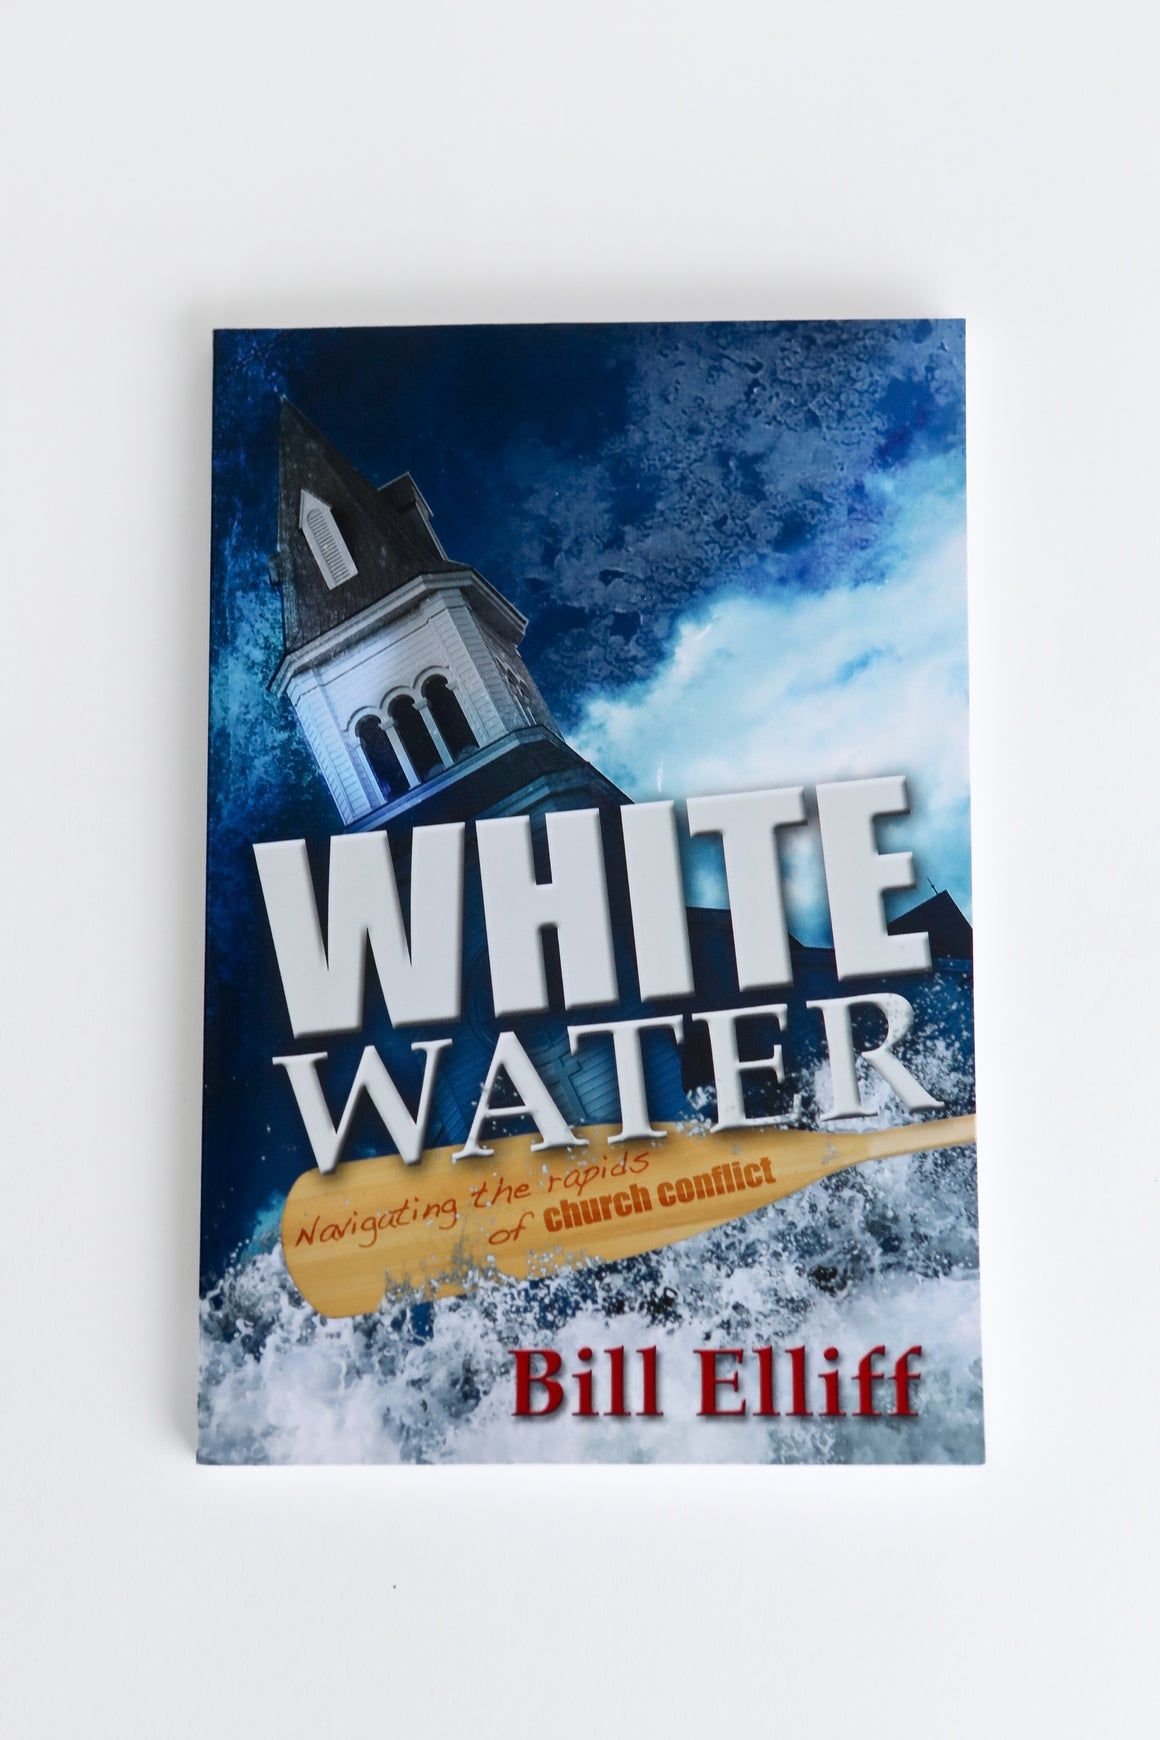 WhiteWater: Navigating the Rapids of Church Conflict-Bill Elliff